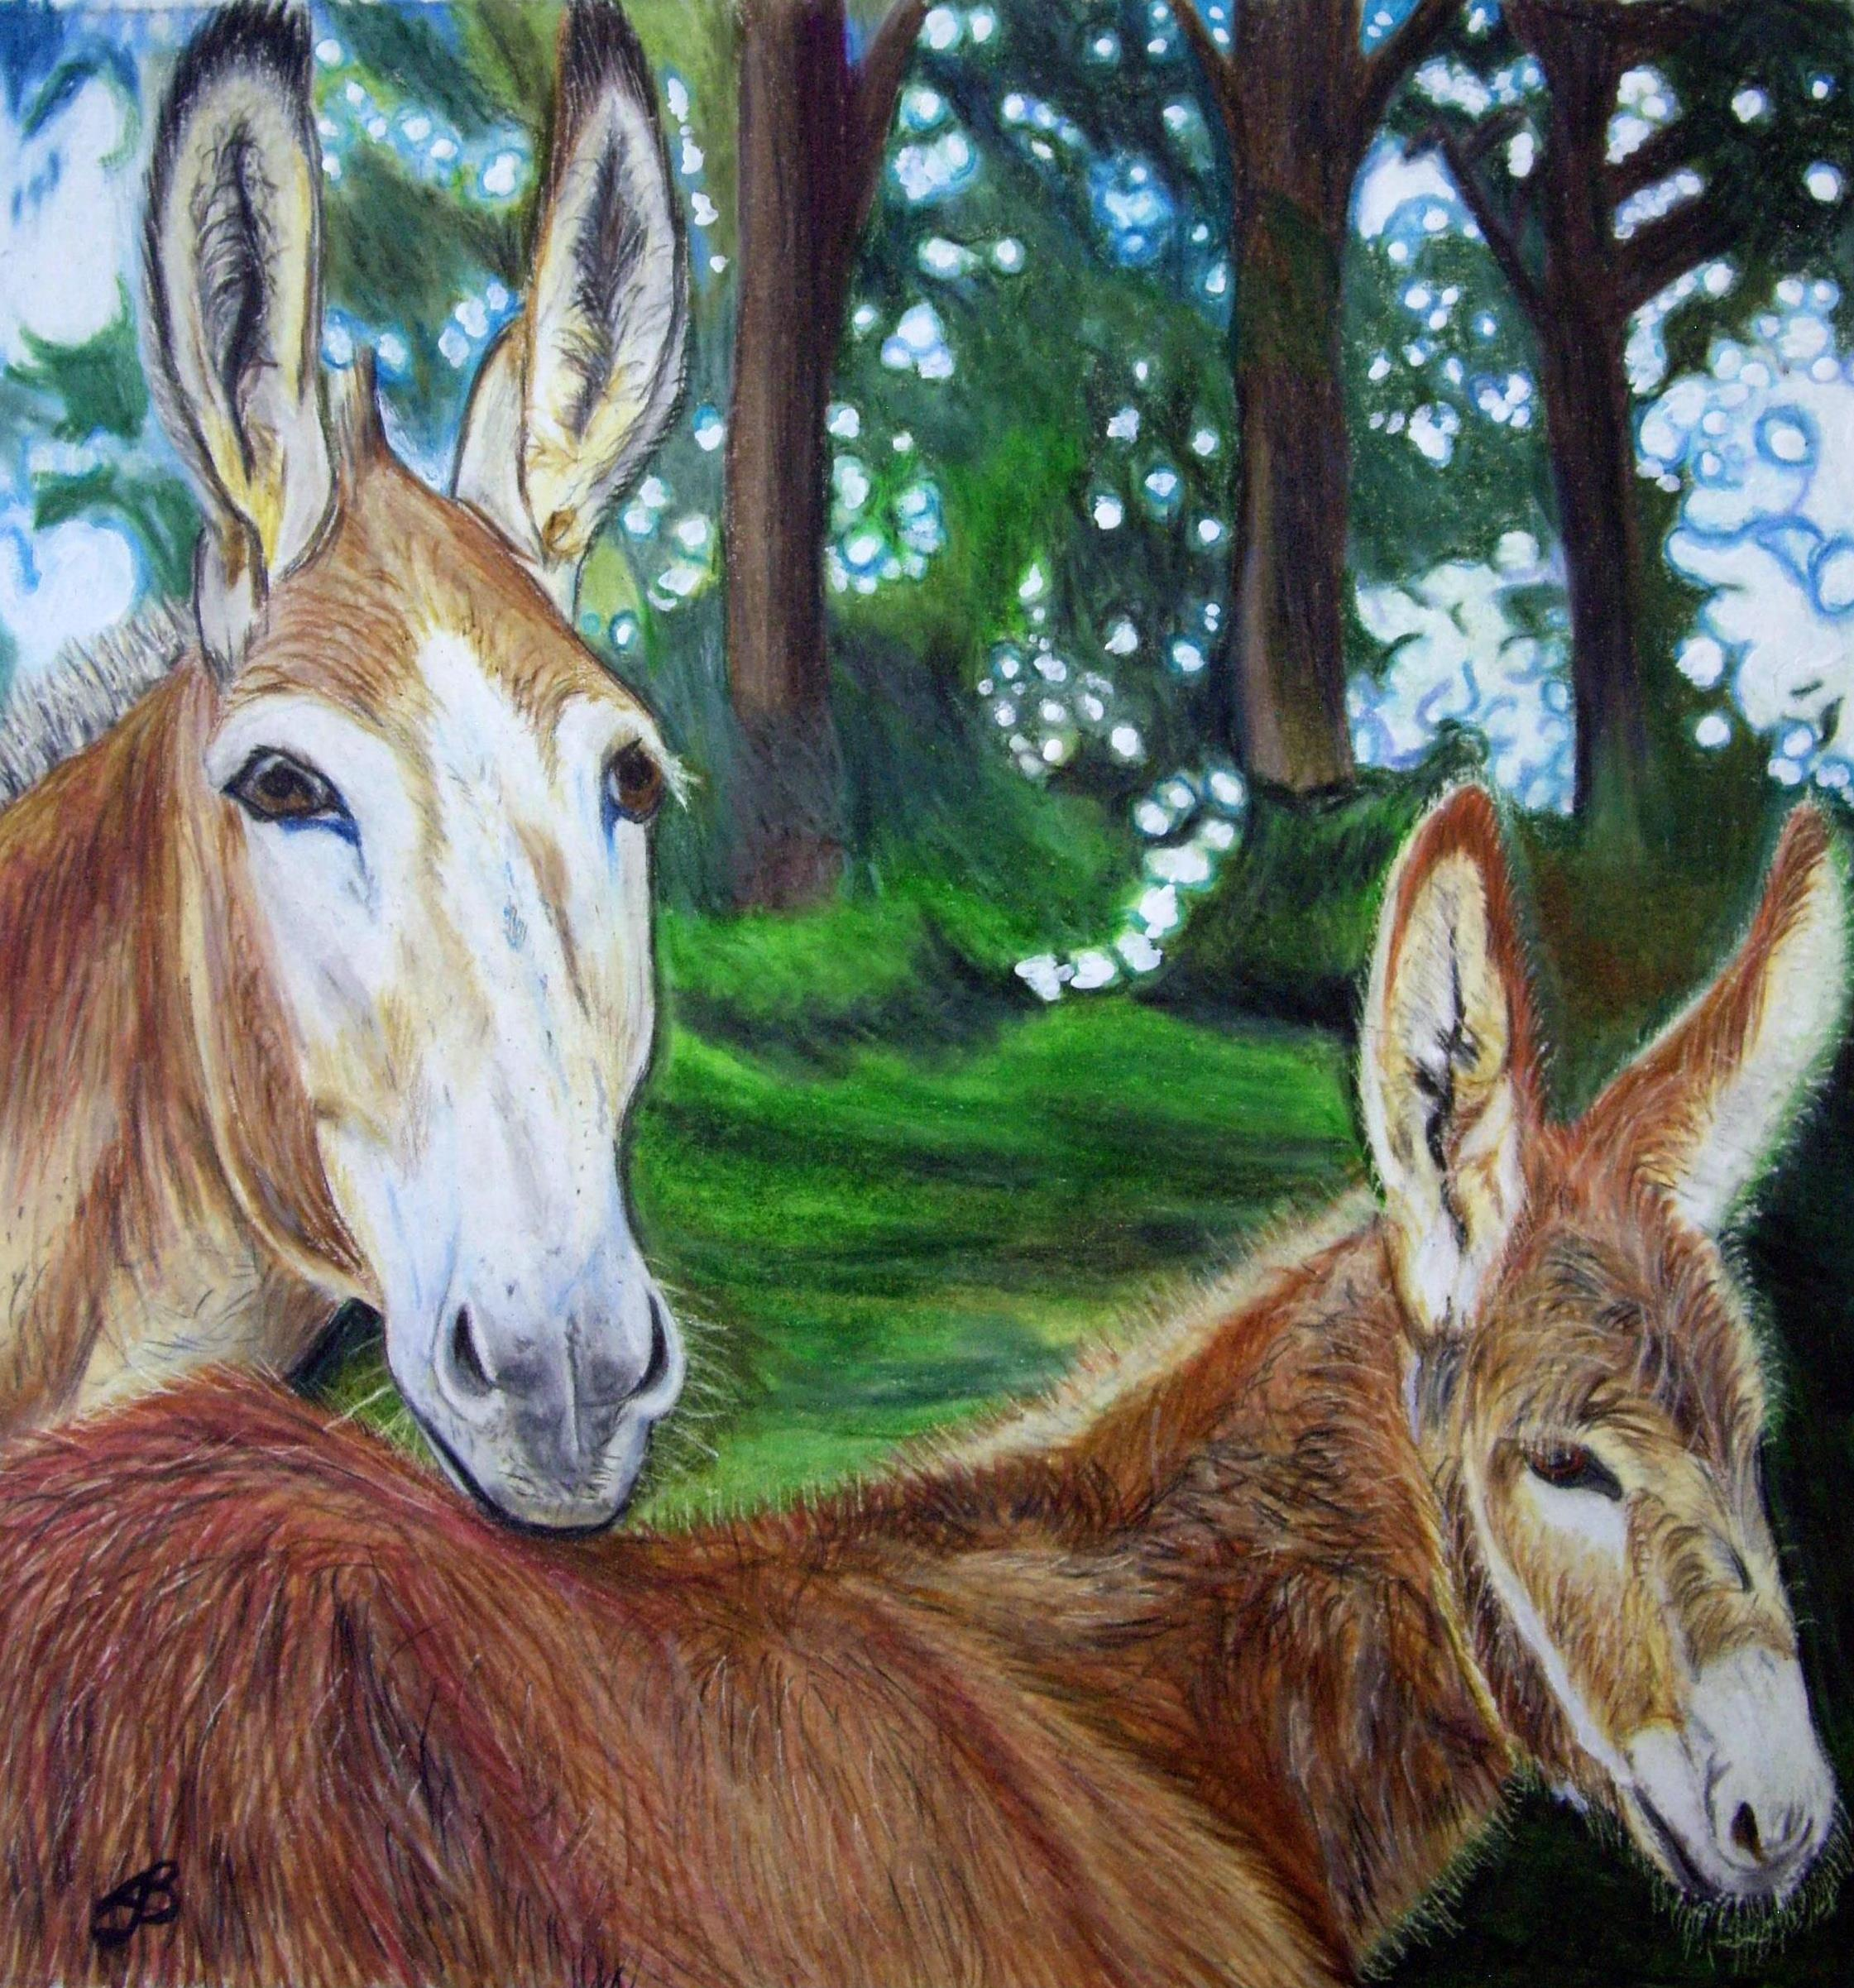 Donkey and Foal in Color Pencil